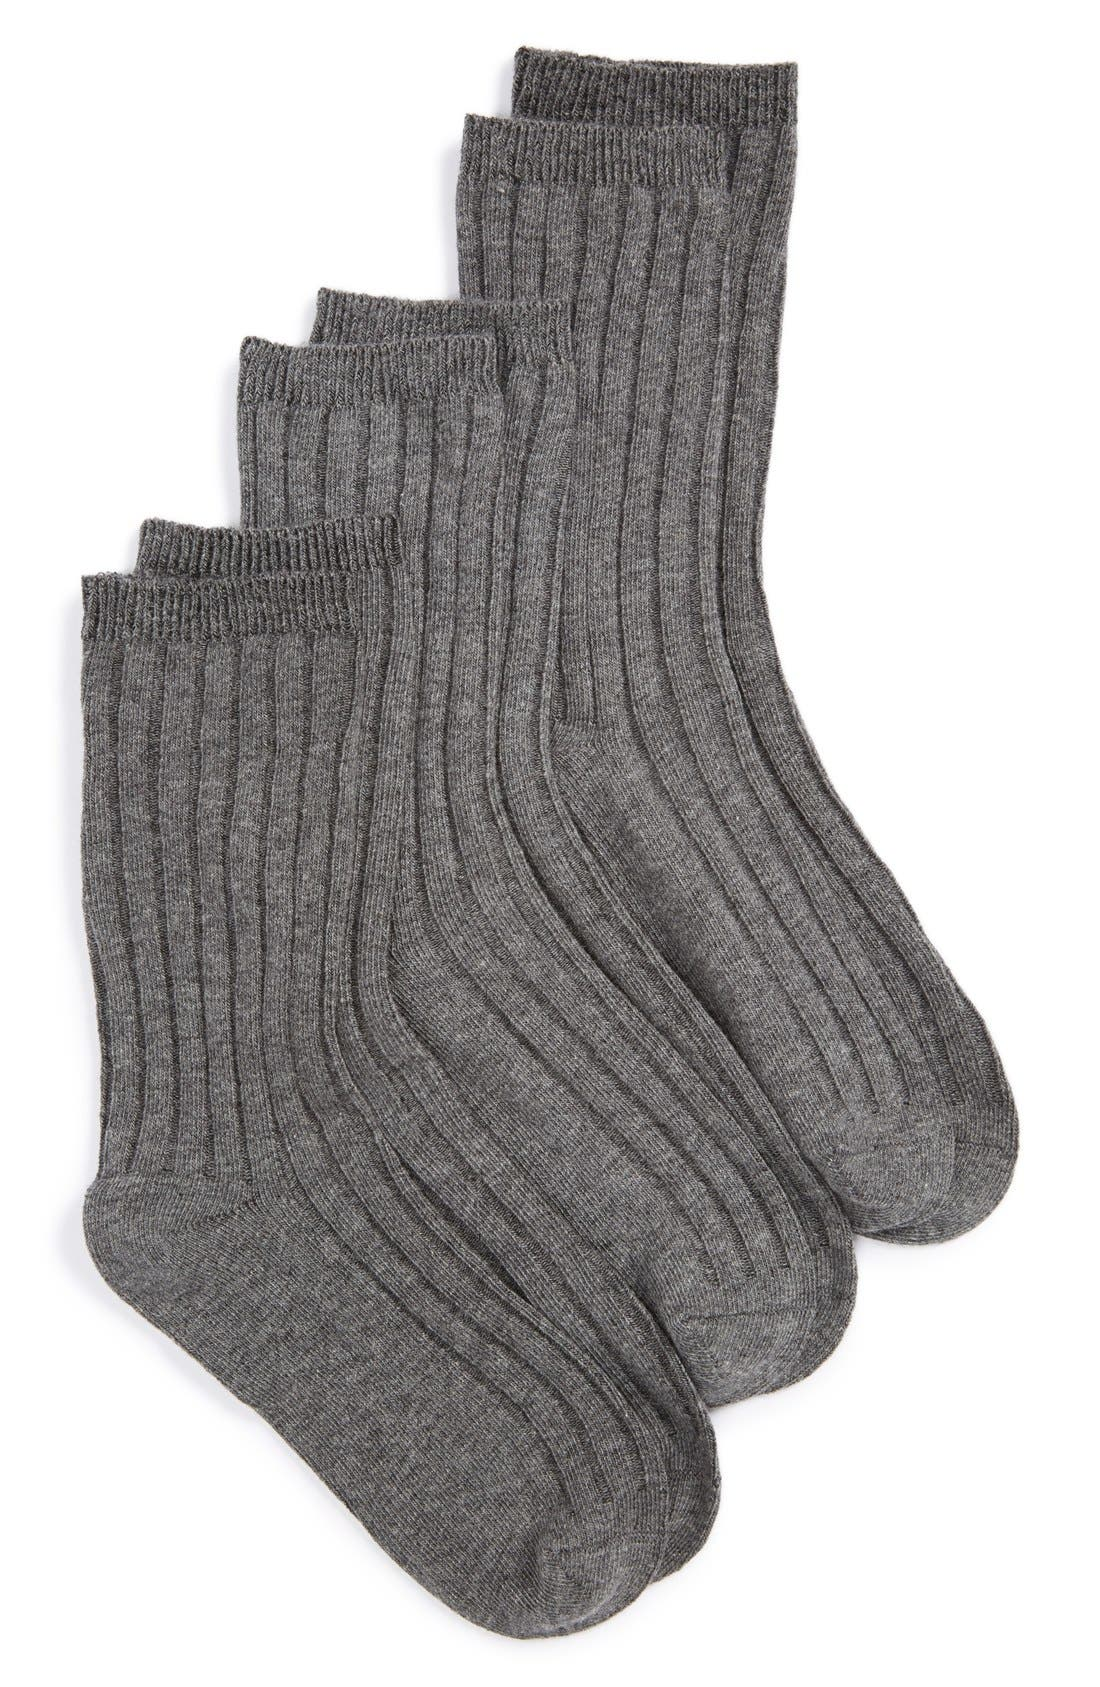 Main Image - Nordstrom 3-Pack Dress Socks (Toddler Boys, Little Boys & Big Boys)